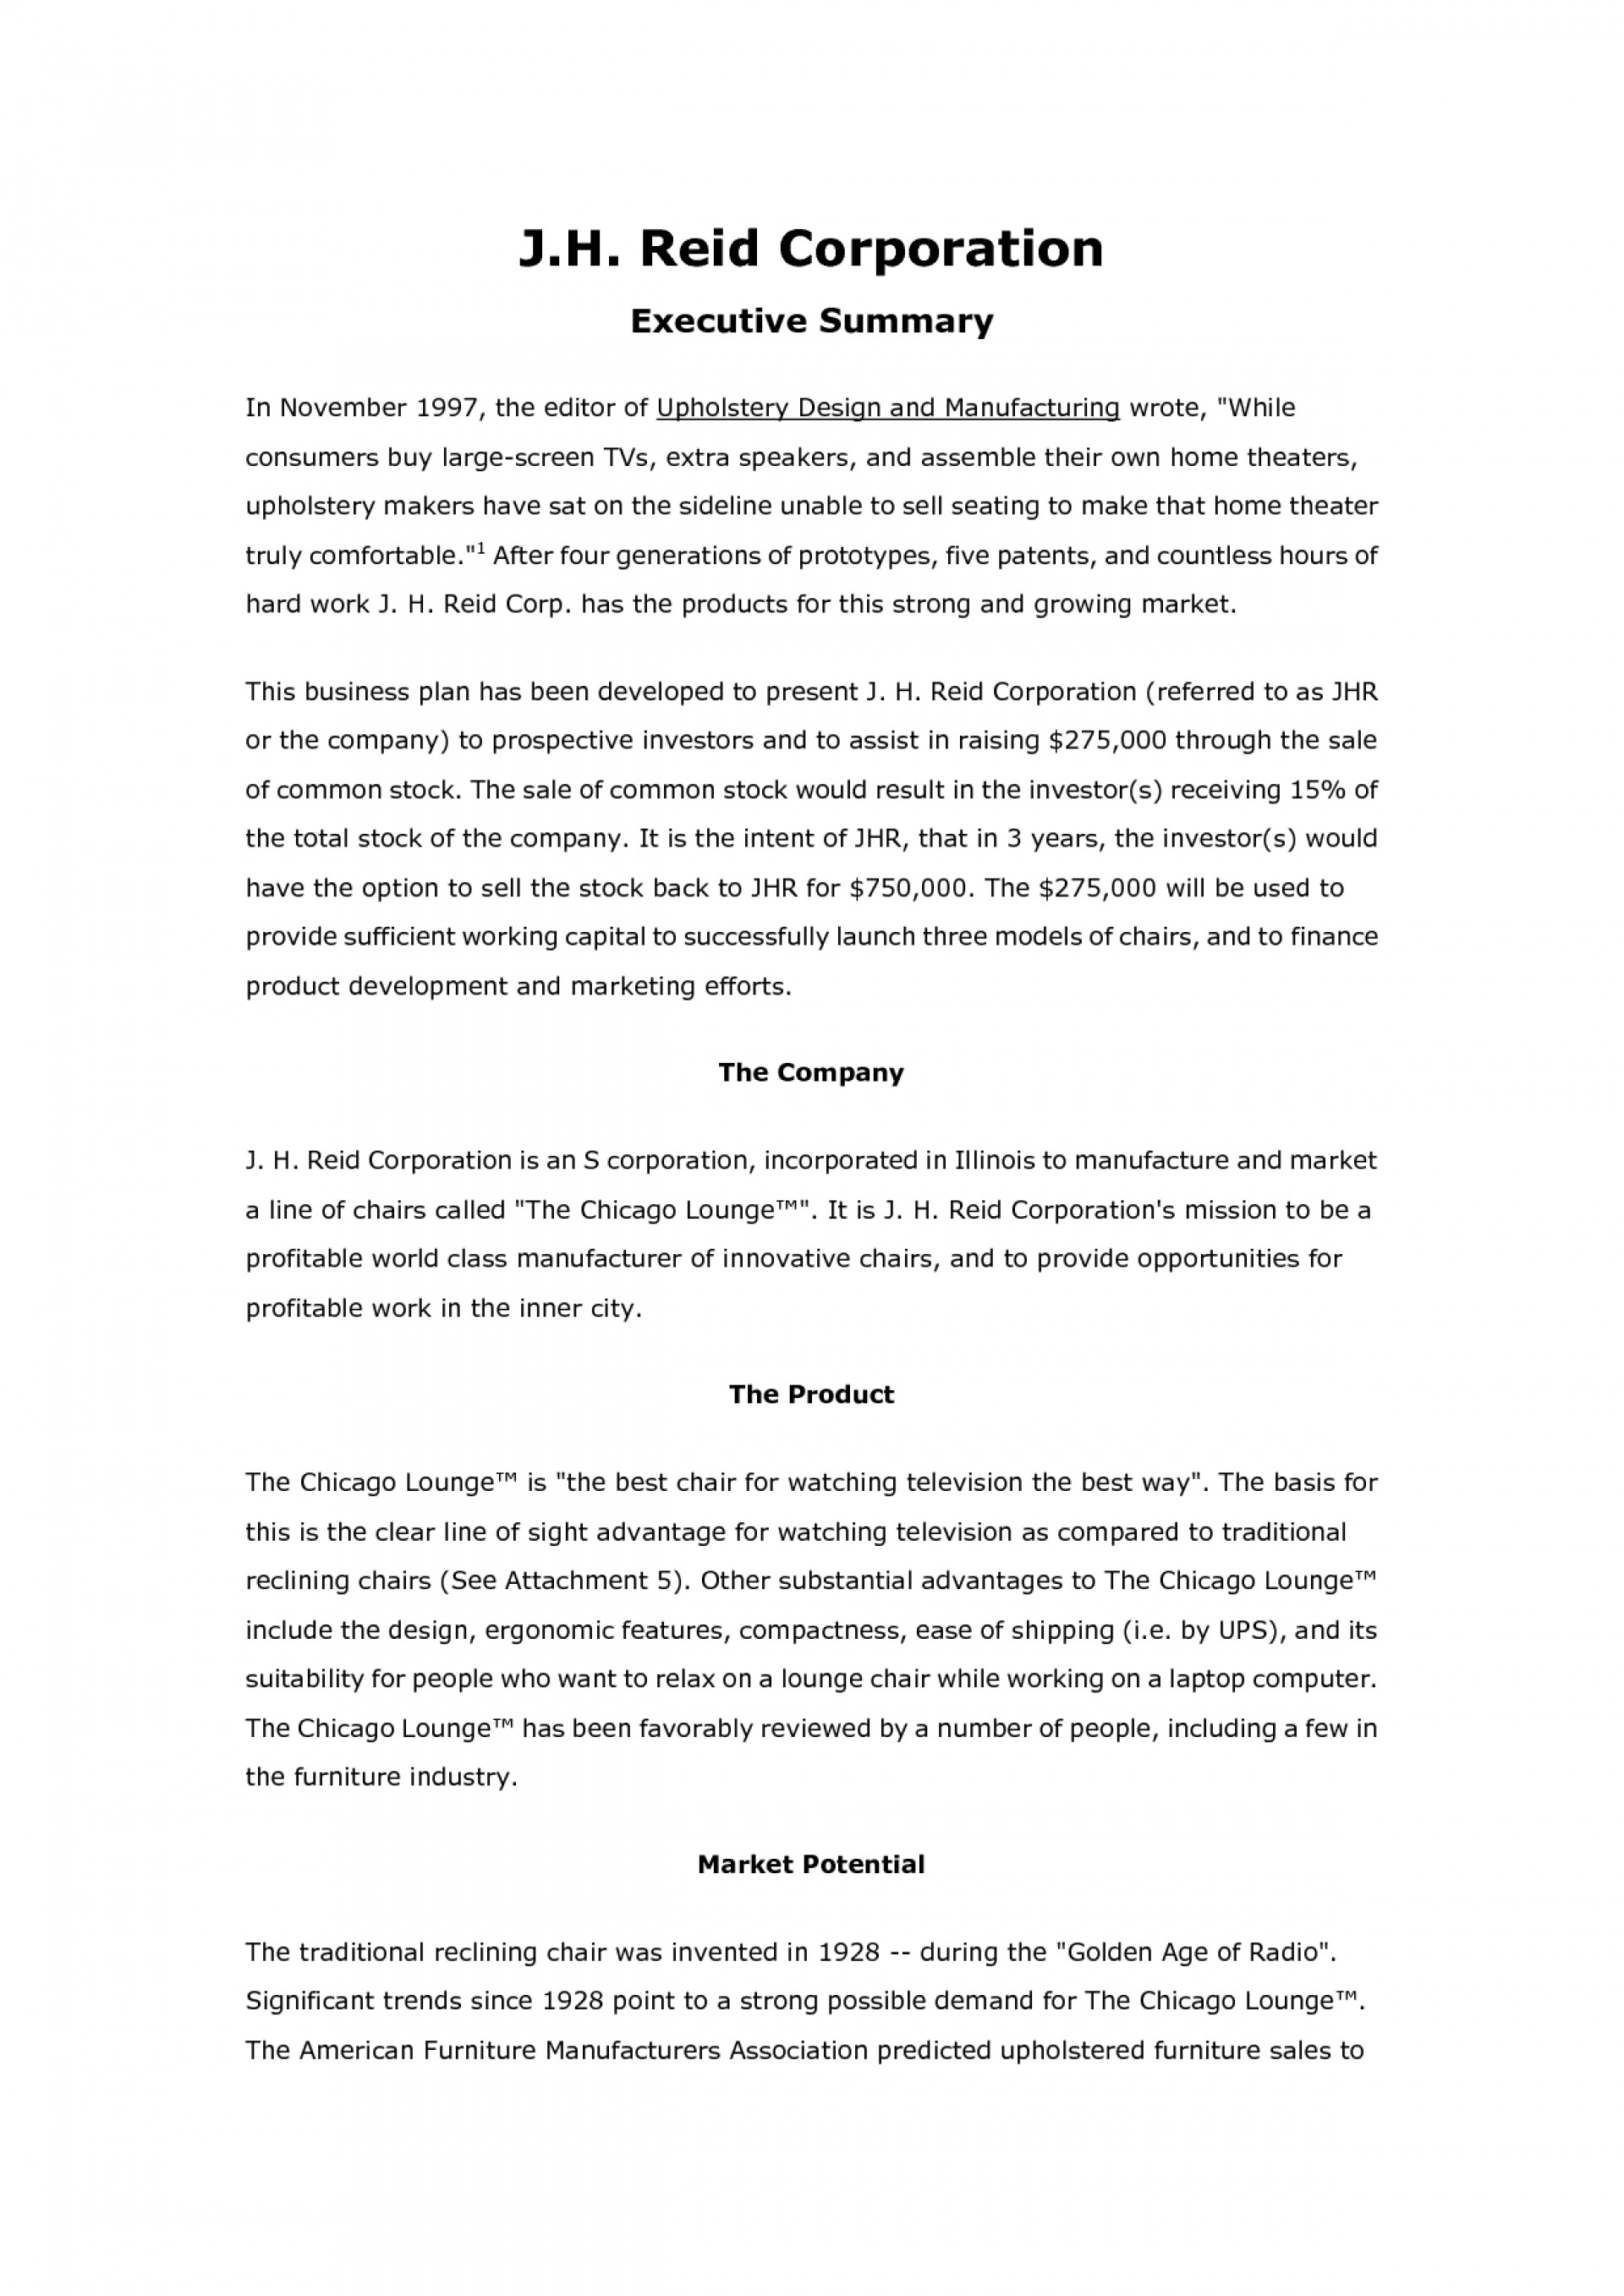 Essay About Healthy Food  Healthy Eating Habits Essay also Topic For English Essay Policy Paper Example Pdf  Floss Papers Science And Technology Essay